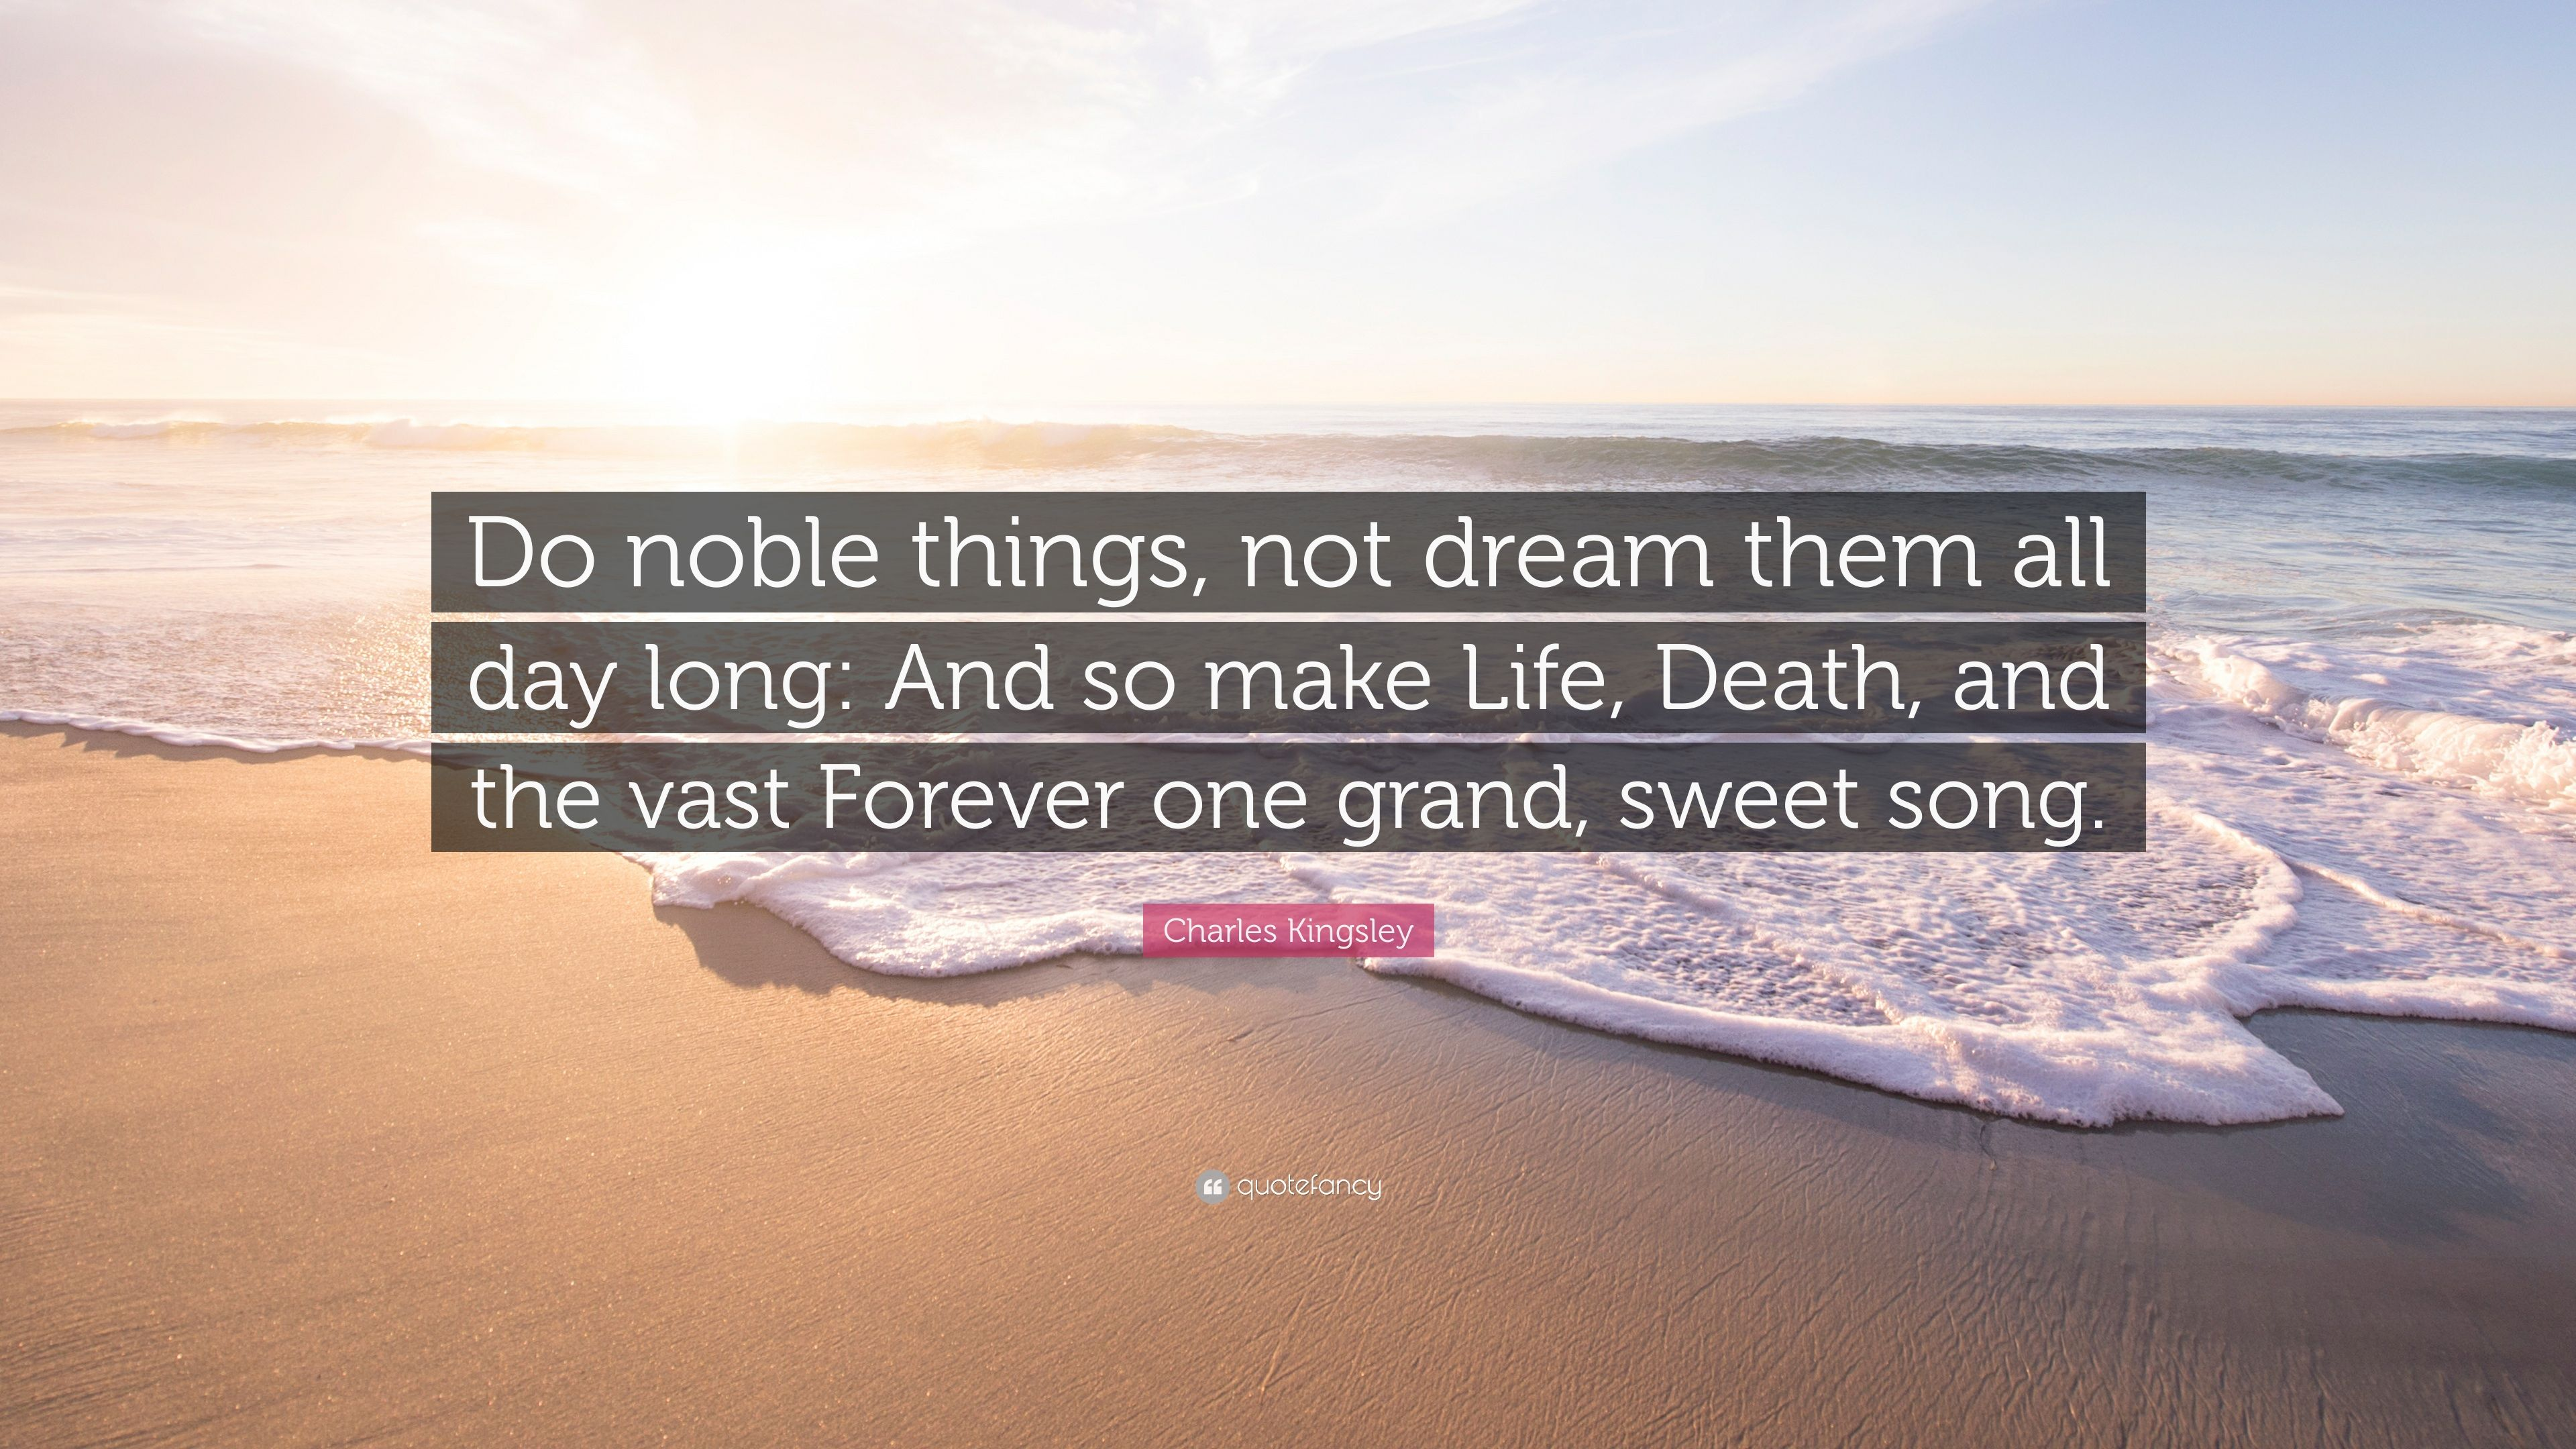 Charles Kingsley Quote: U201cDo Noble Things, Not Dream Them All Day Long: